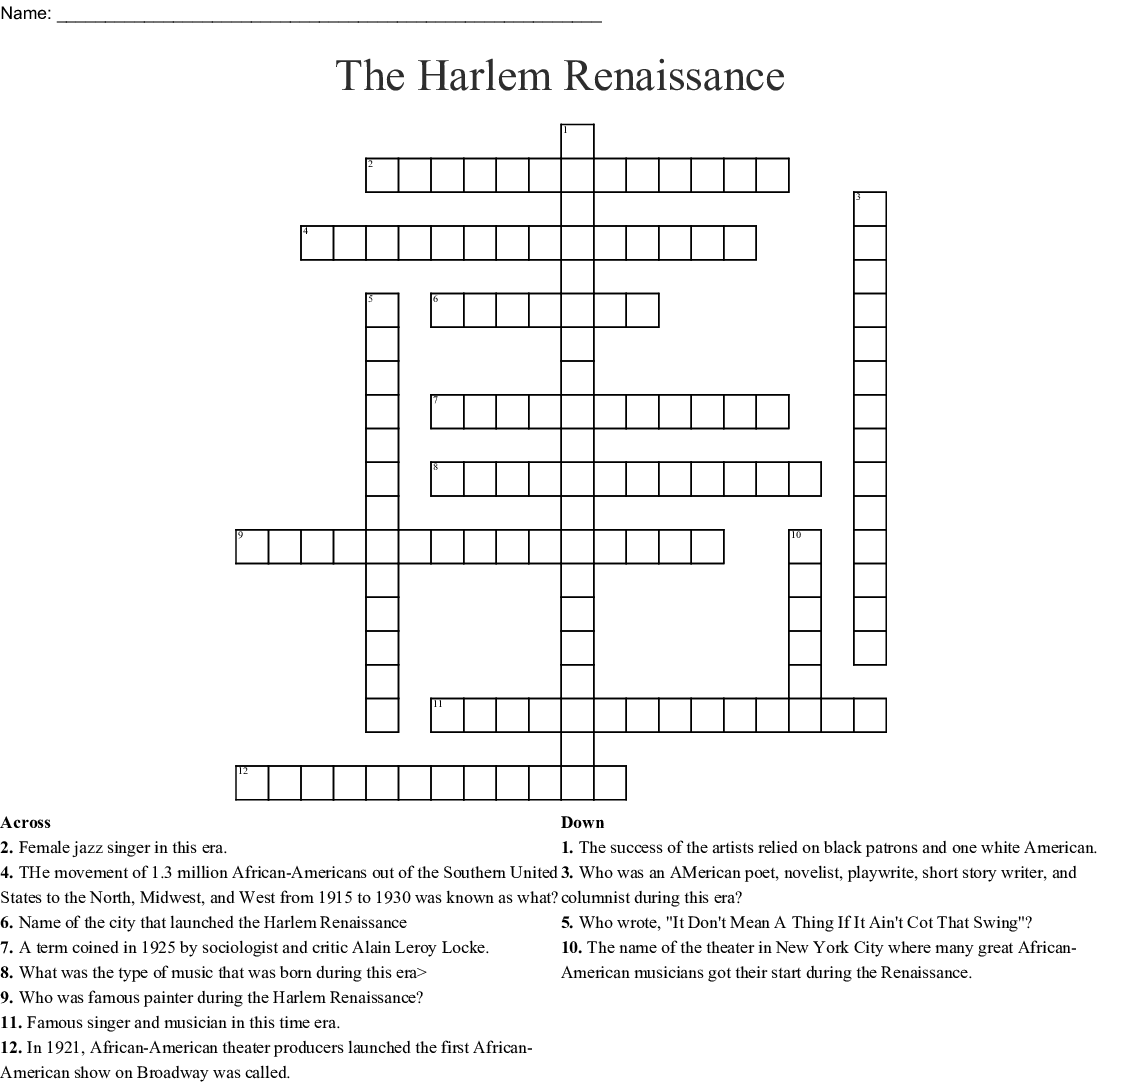 Harlem Renaissance Word Search - WordMint